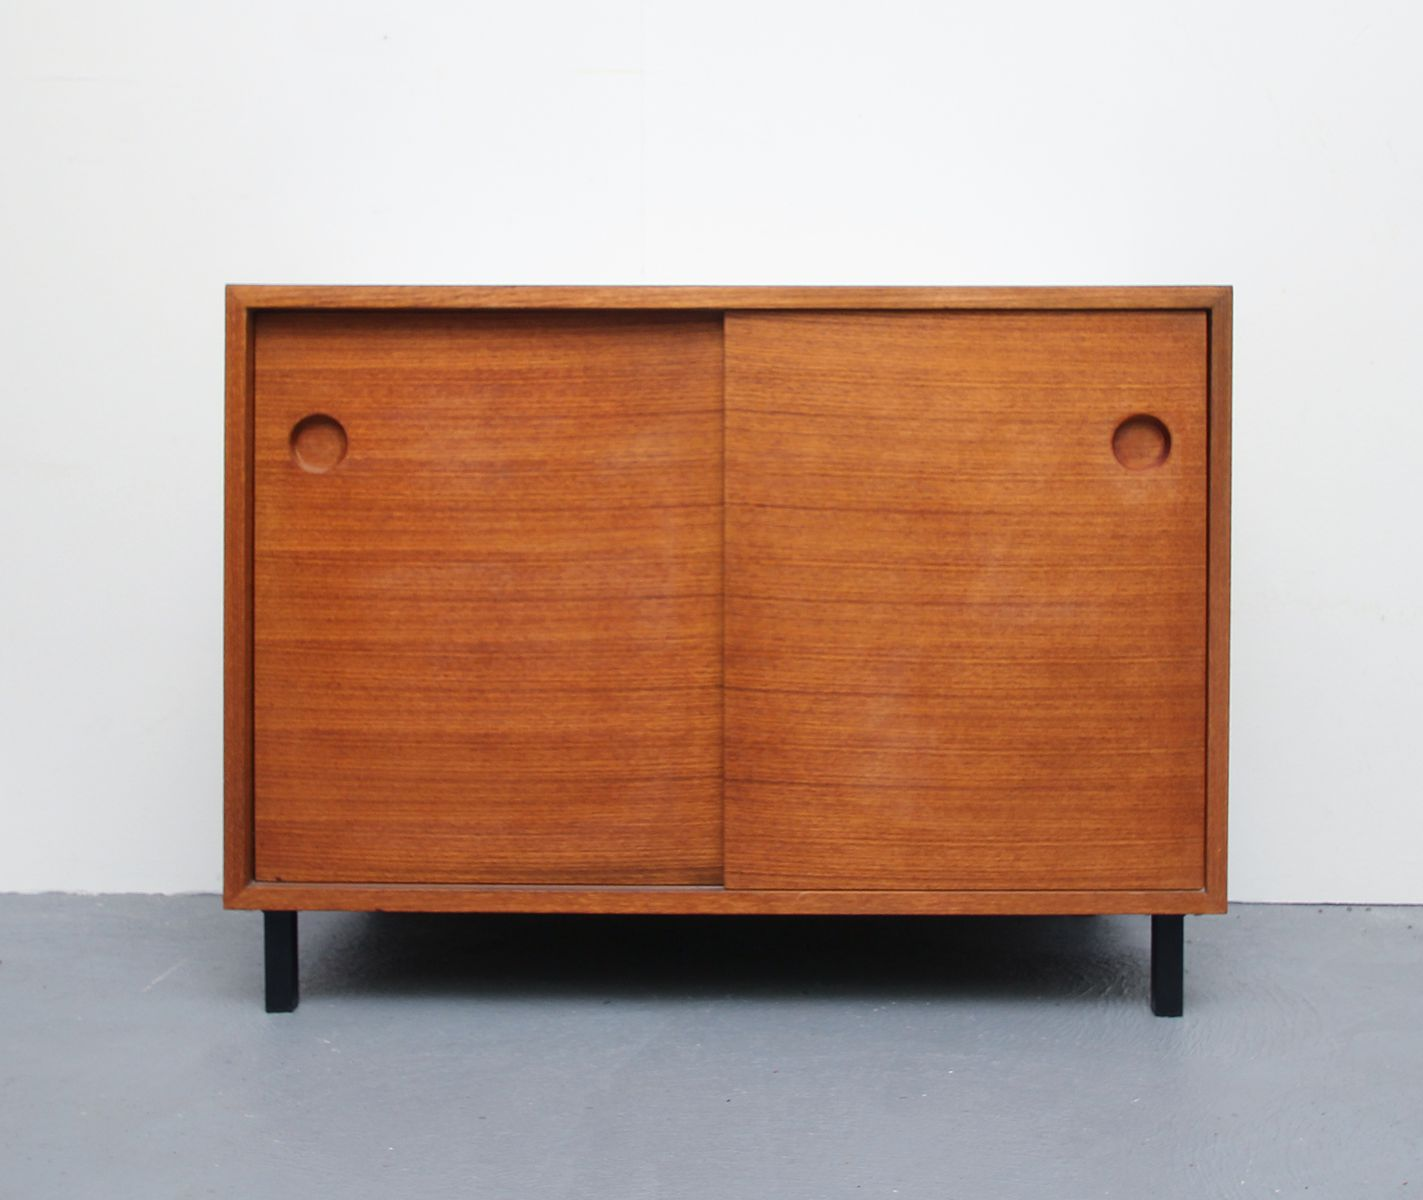 sideboard aus teak furnier resopal mit schiebet ren 1960er bei pamono kaufen. Black Bedroom Furniture Sets. Home Design Ideas